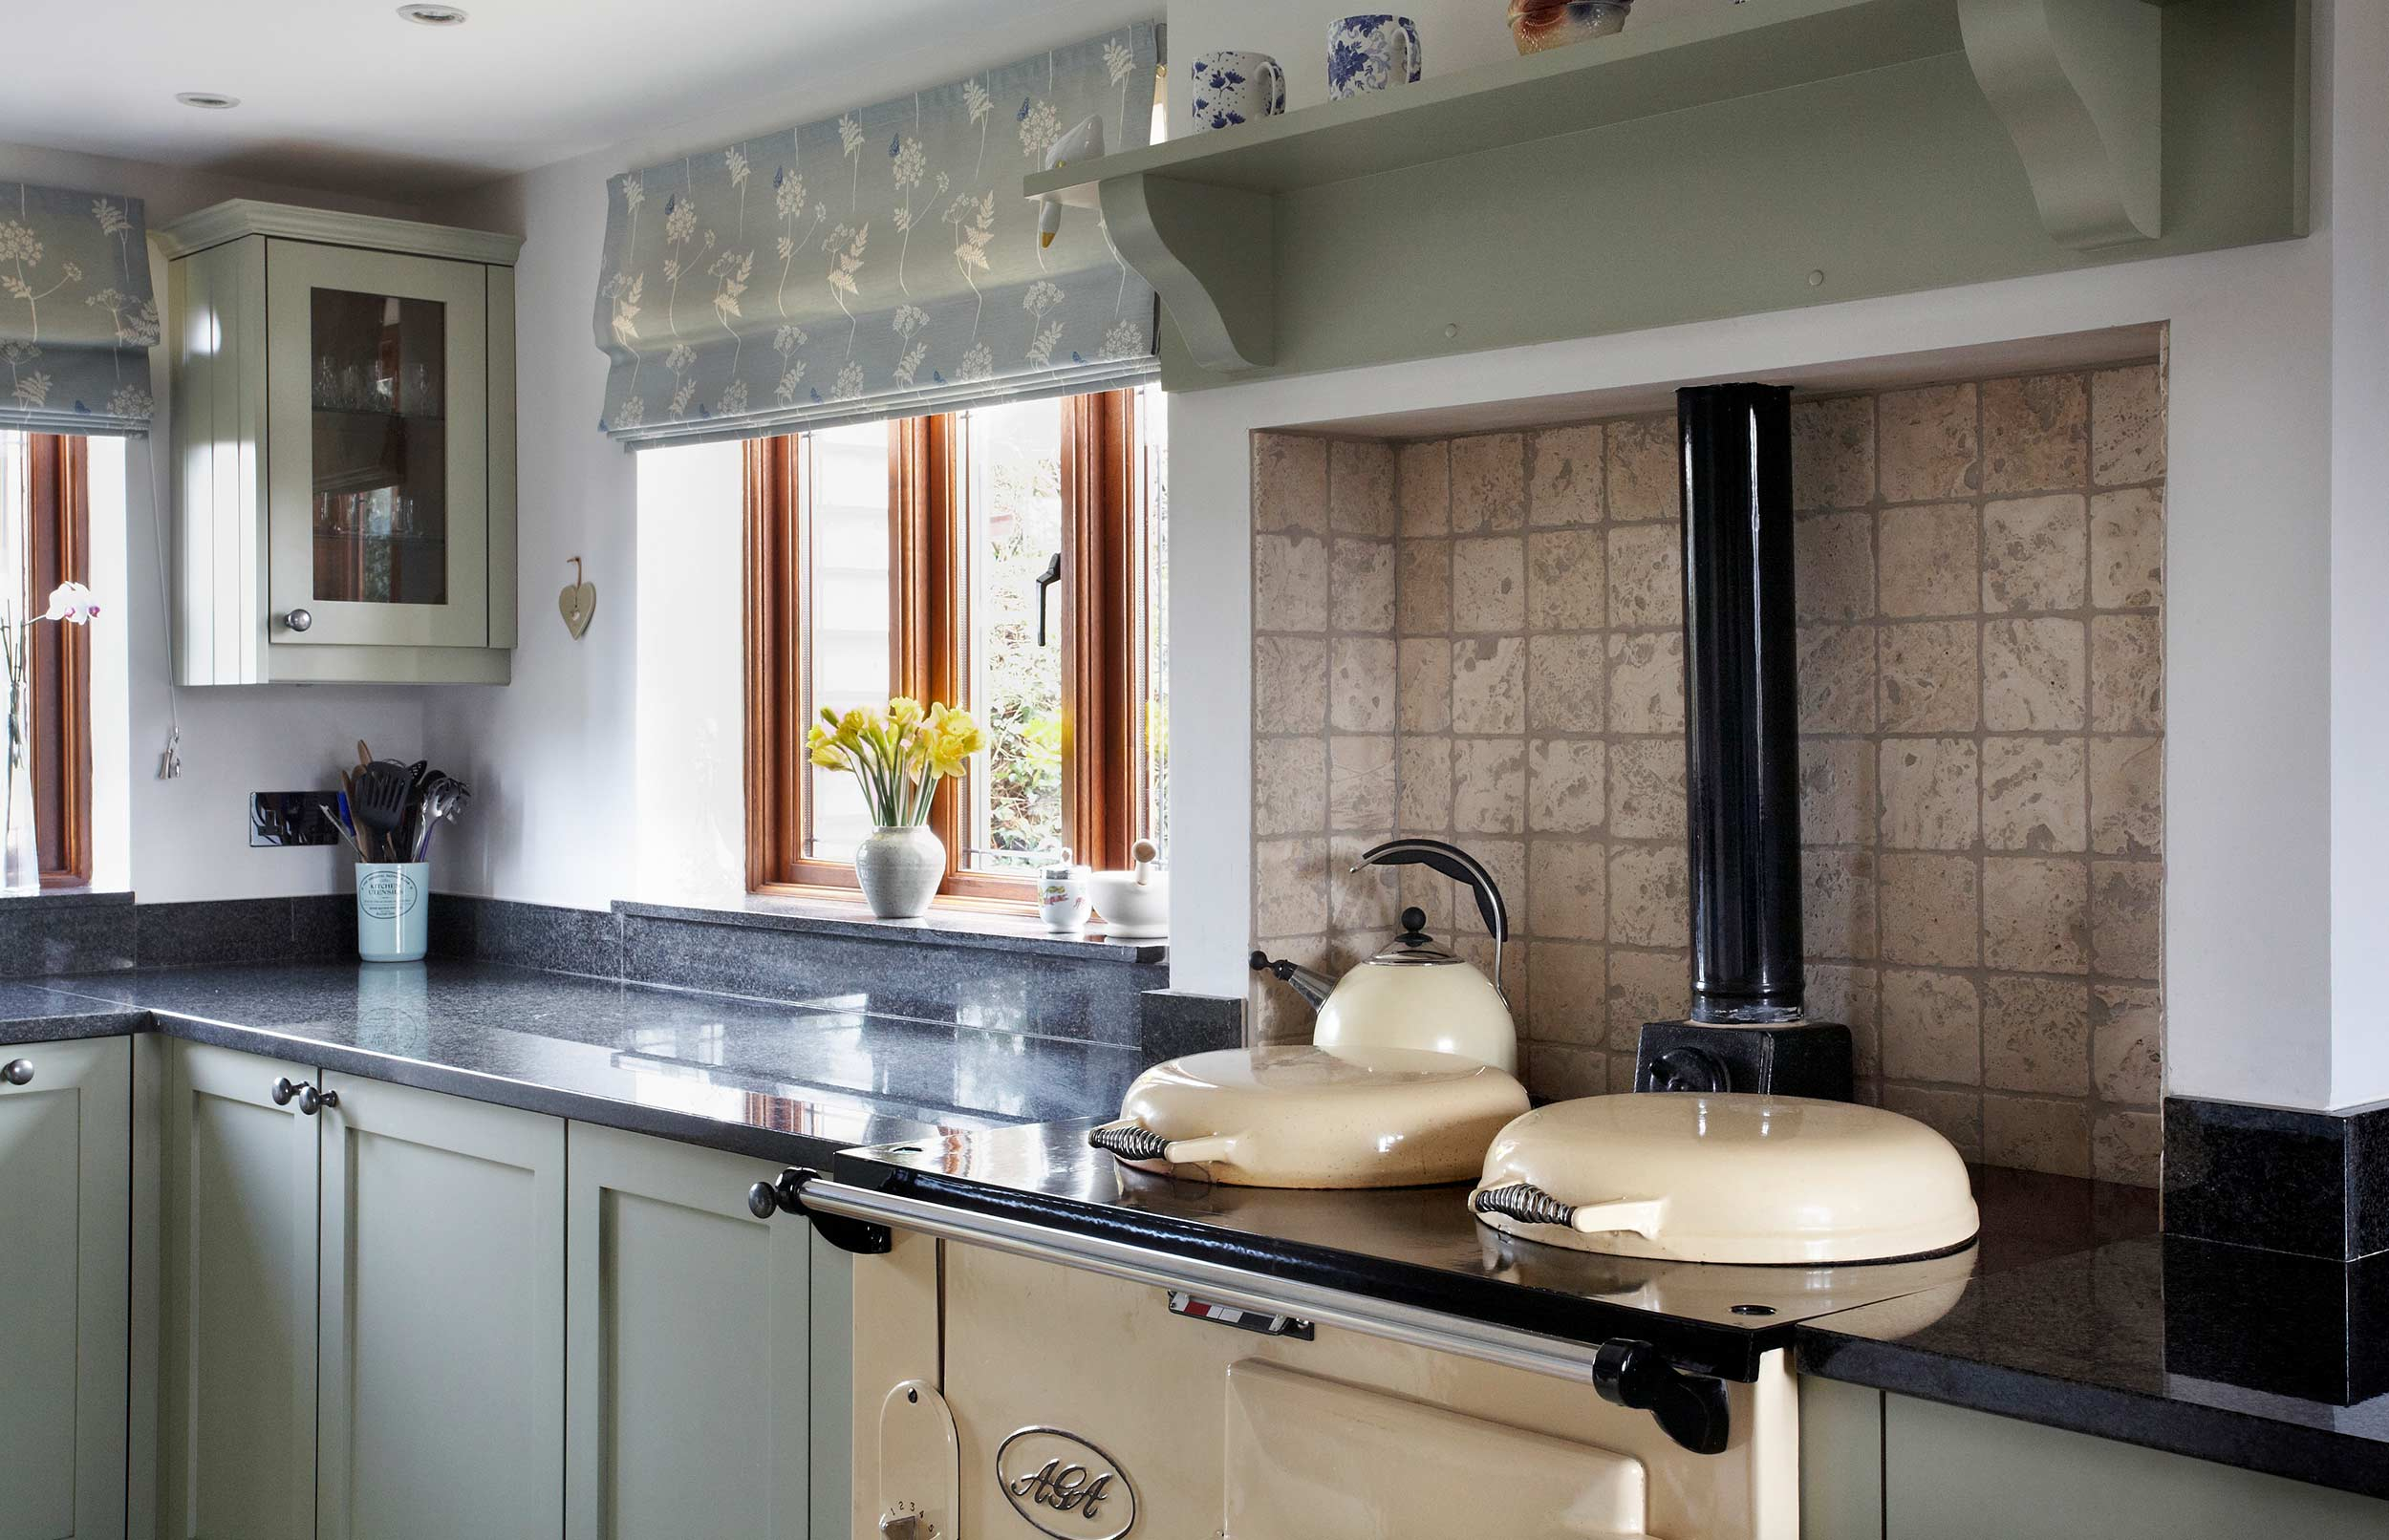 Cosy Bespoke Kitchen with Range Cooker